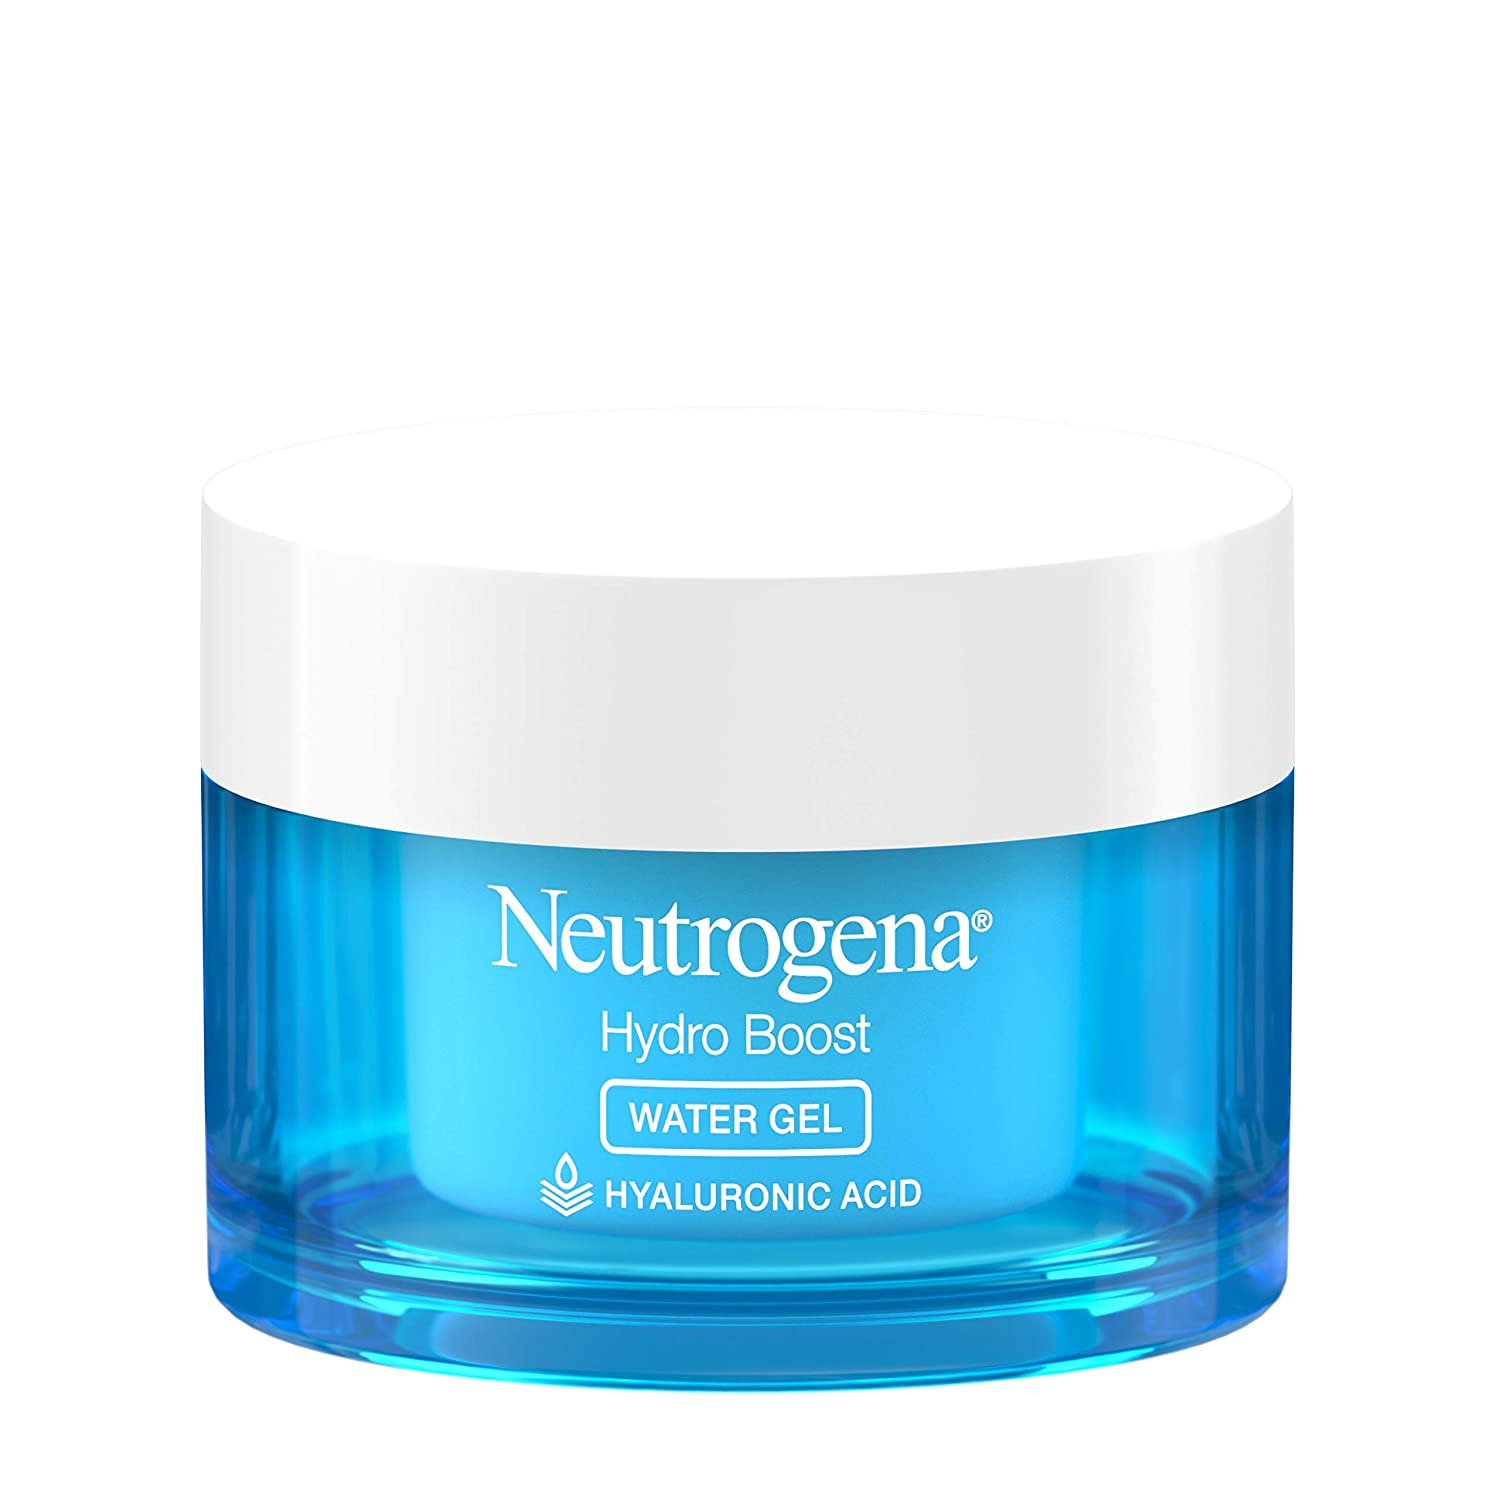 Neutrogena Hydro Boost Hyaluronic Acid Hydrating Daily Face Moisturizer For Dry Skin Oilfree Noncomedogenic Dyefree Face Lotion Water Gel Fragrance Free 1 7 Ounce Beauty